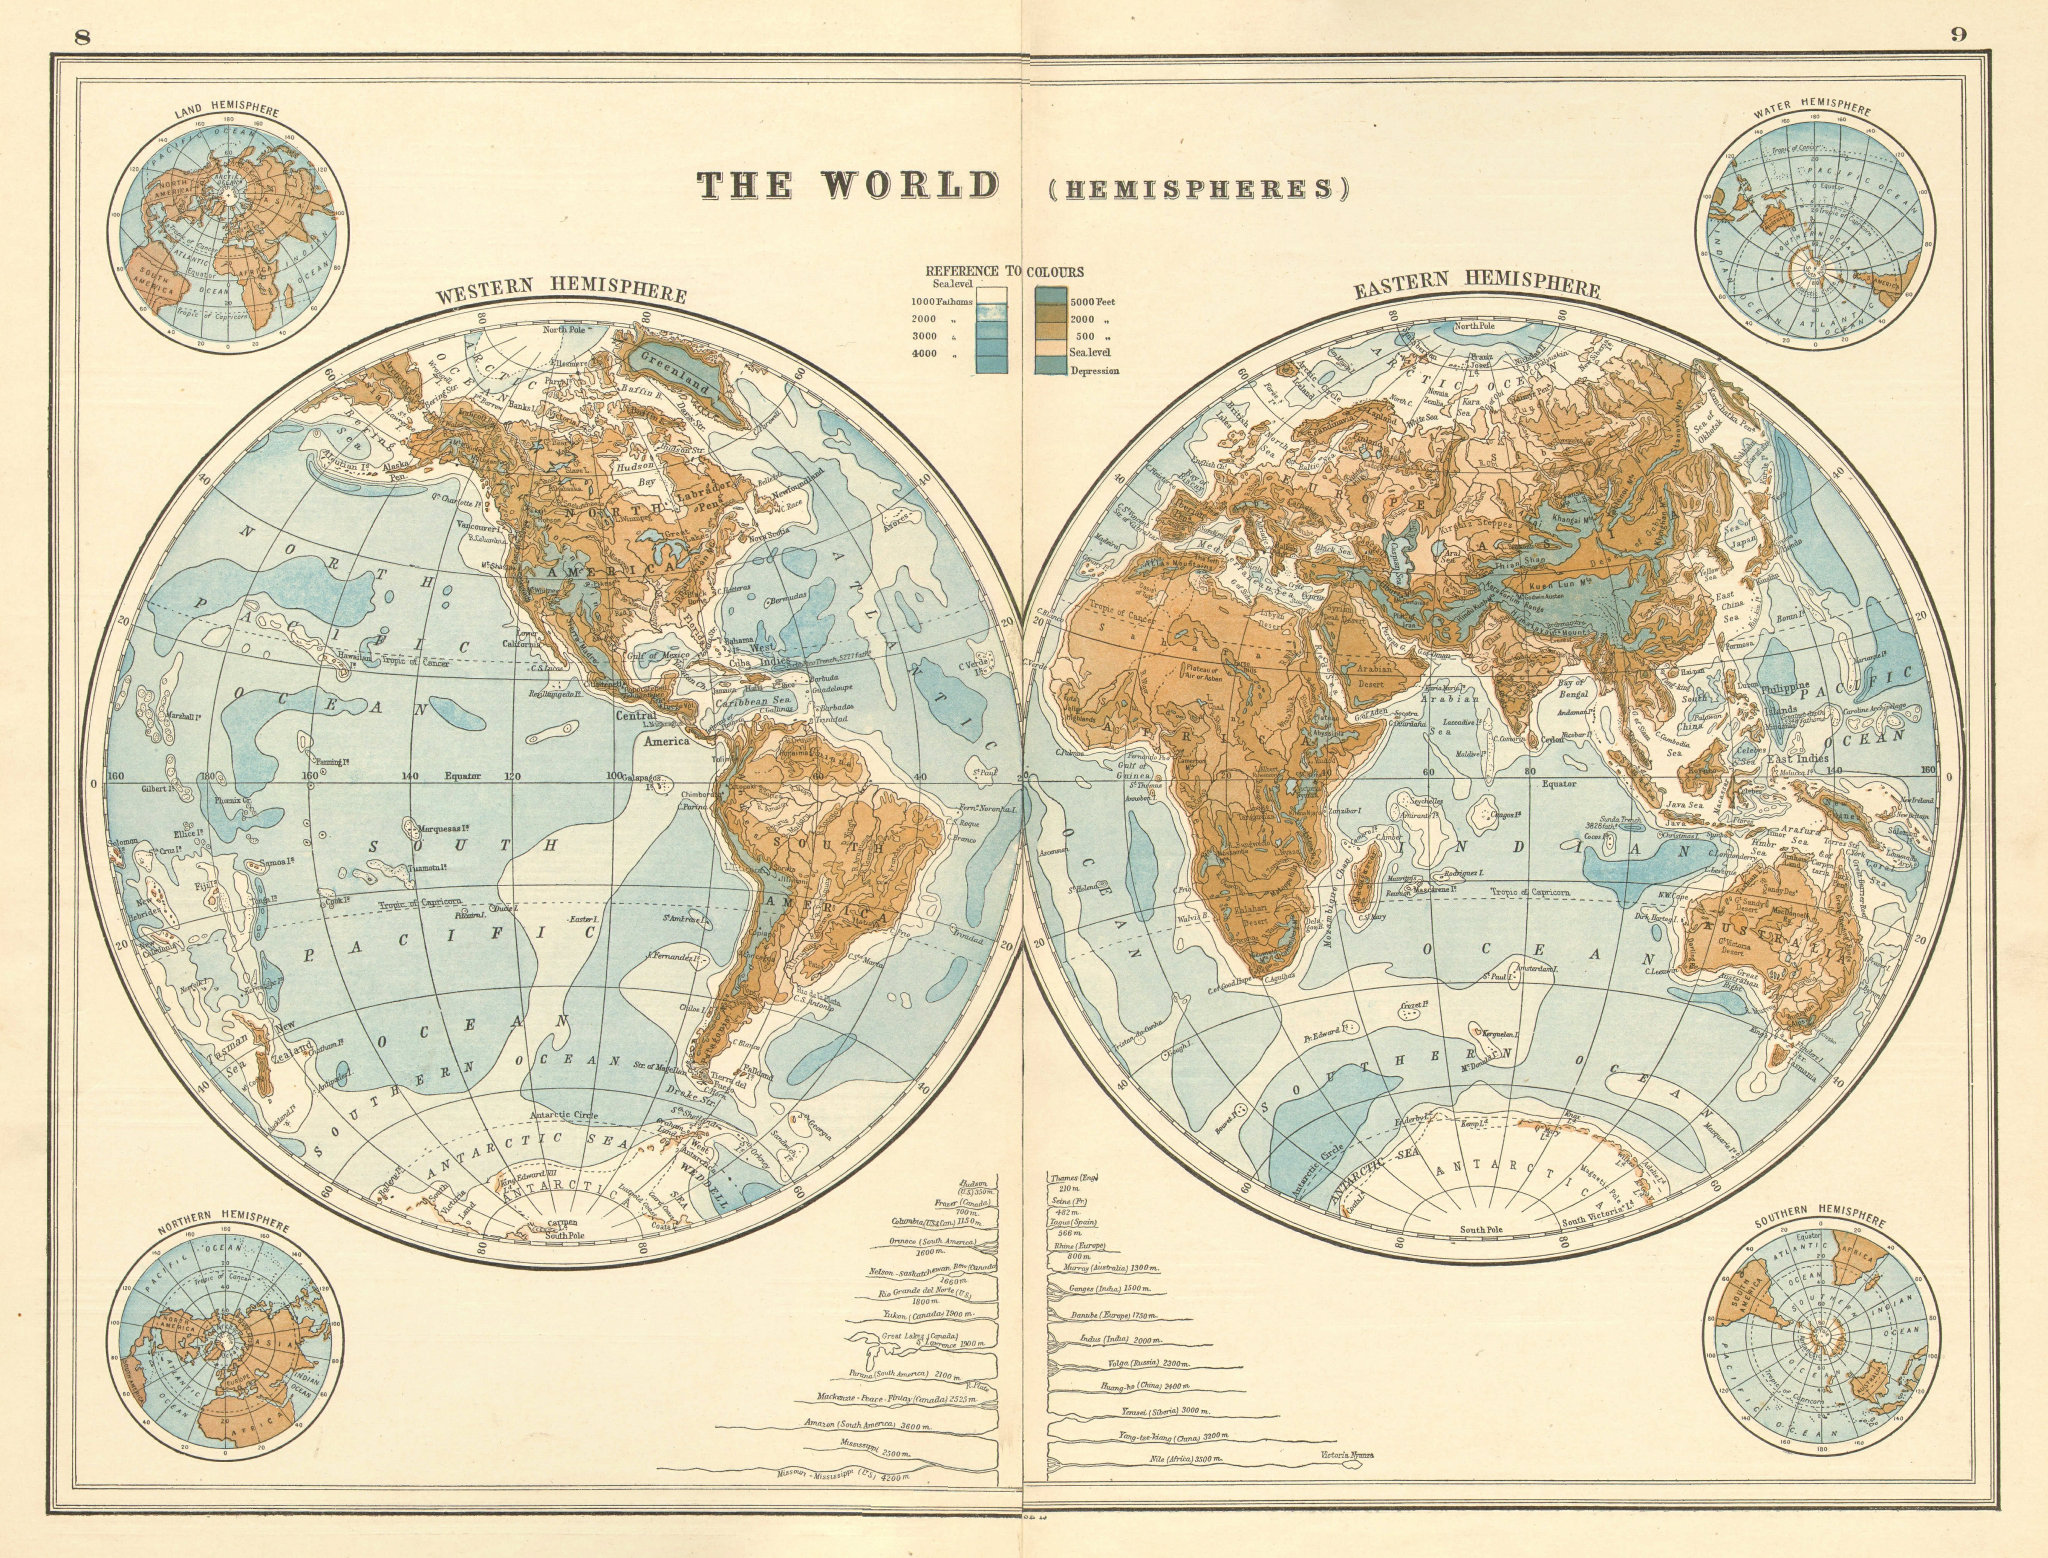 Associate Product WORLD IN HEMISPHERES. Relief. NSEW. Land & Water. River lengths 1920 old map